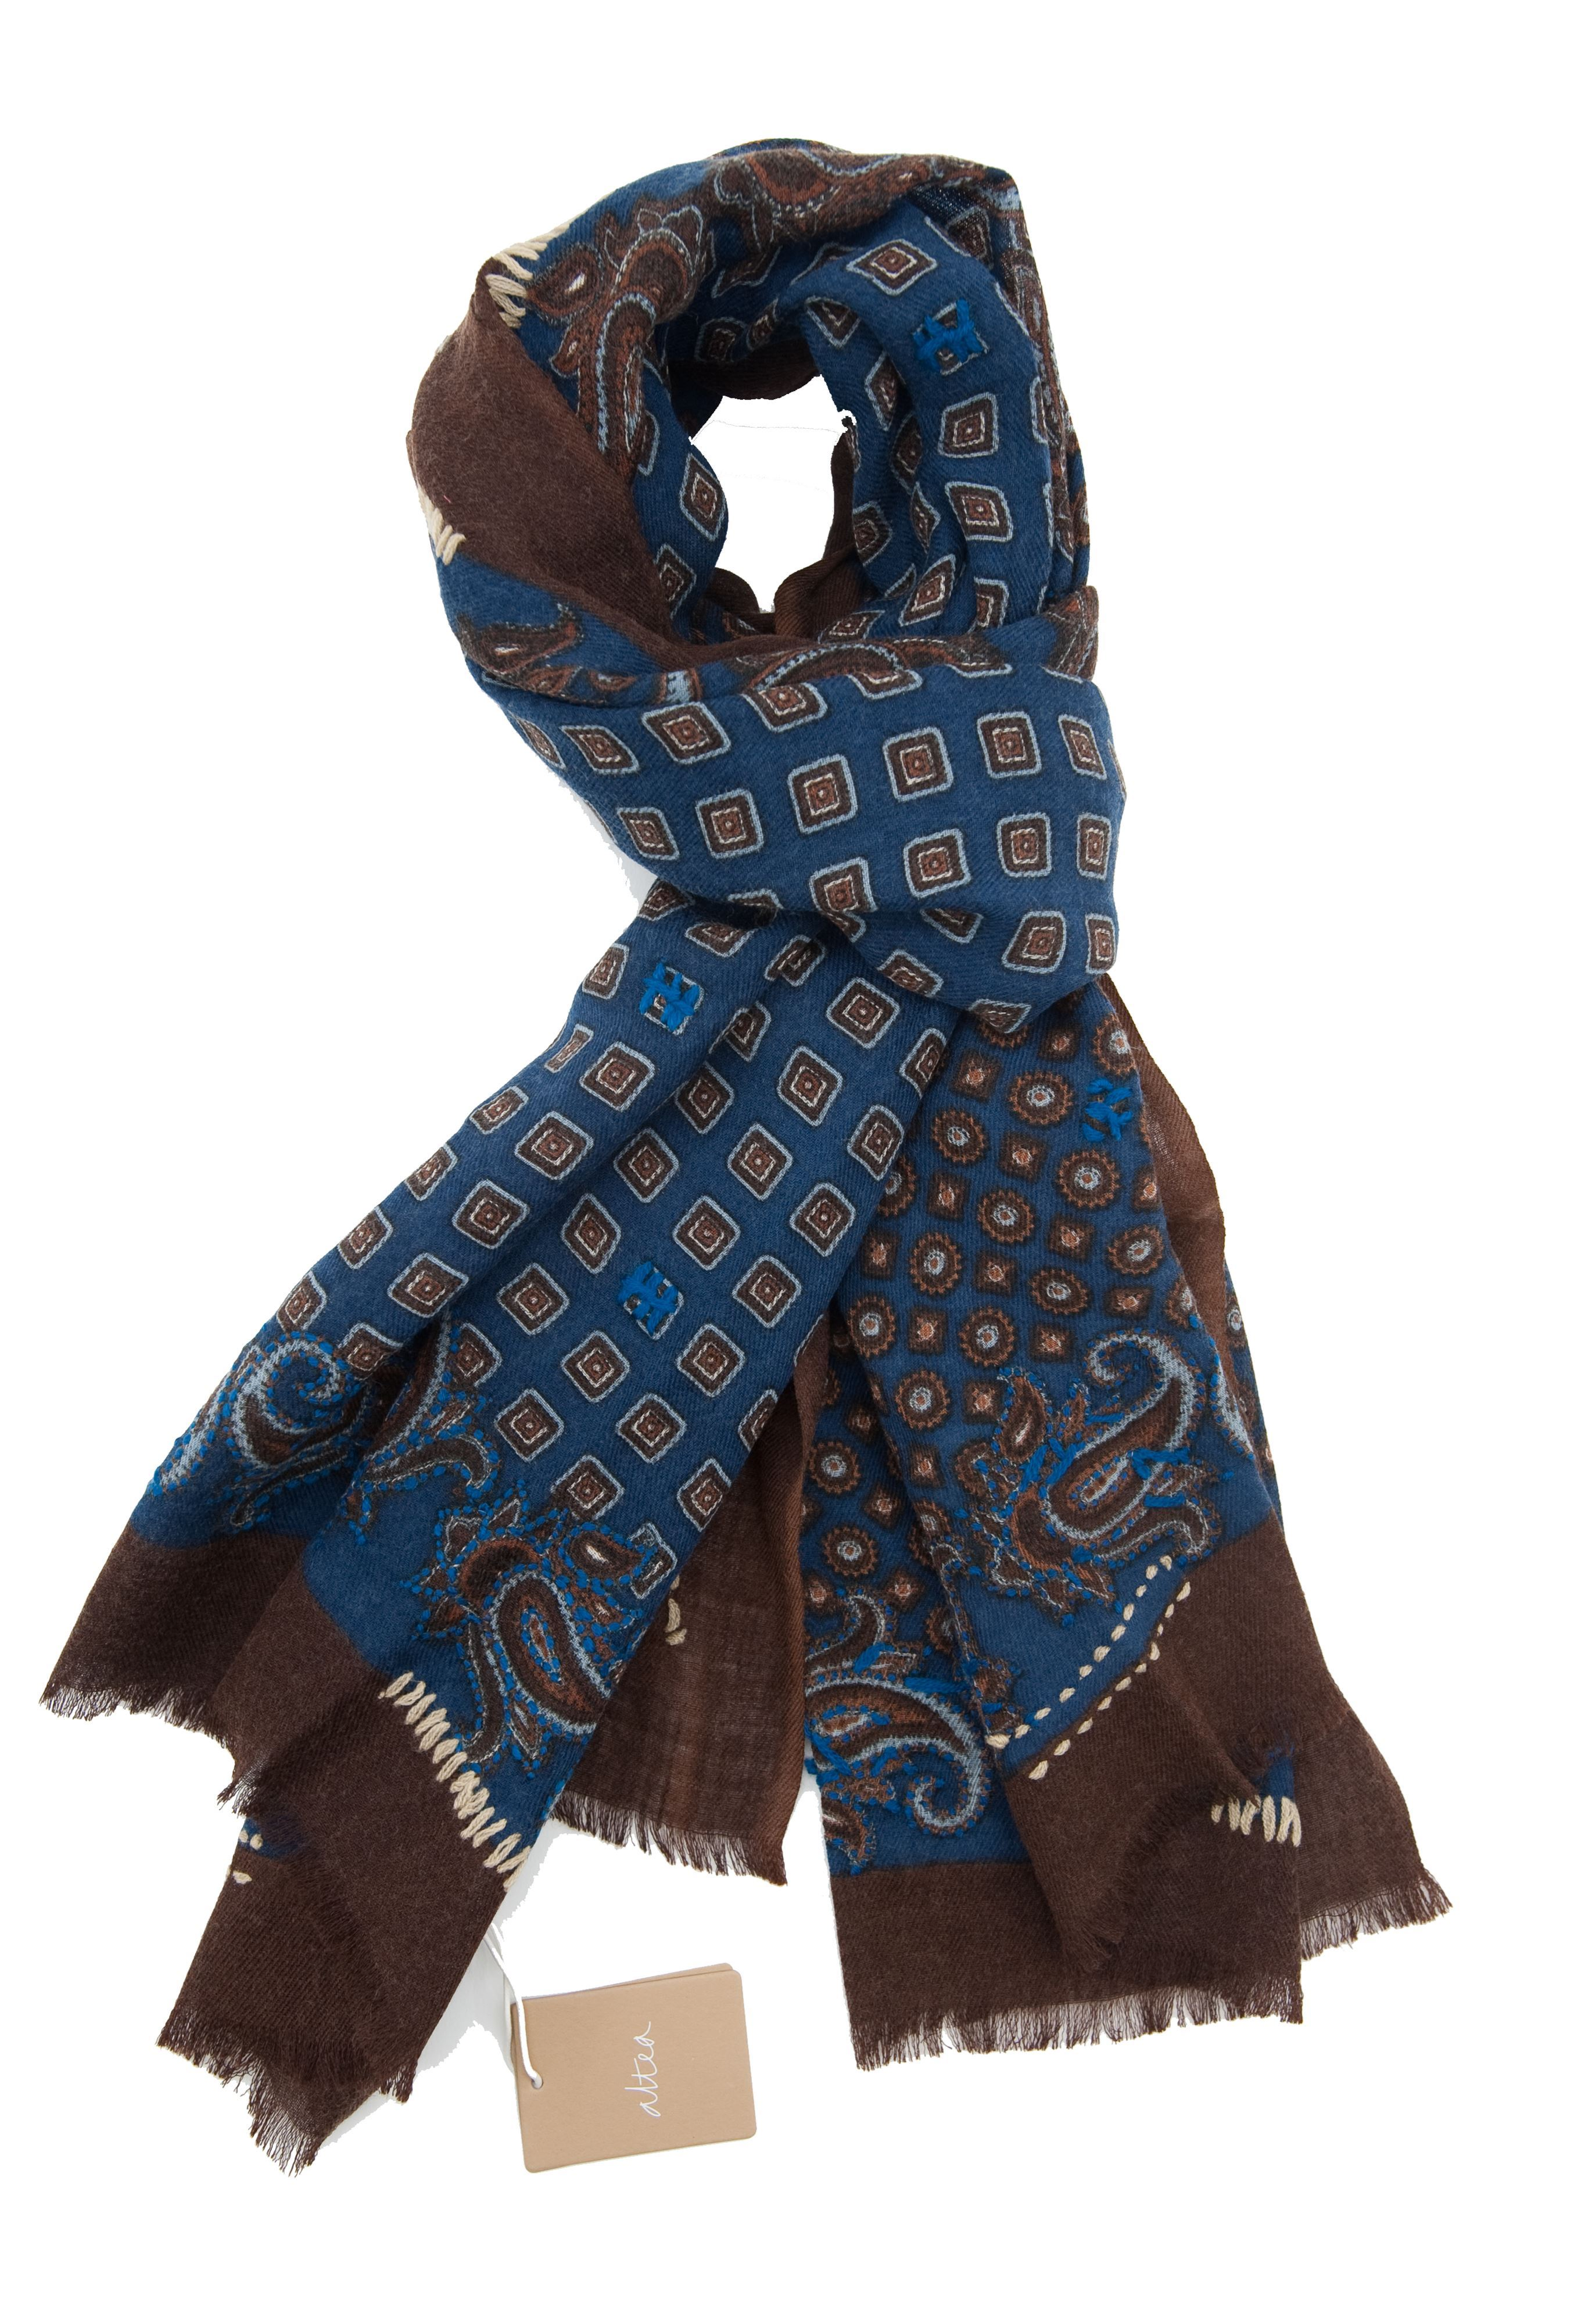 Picture of Wool scarf blue and brown background